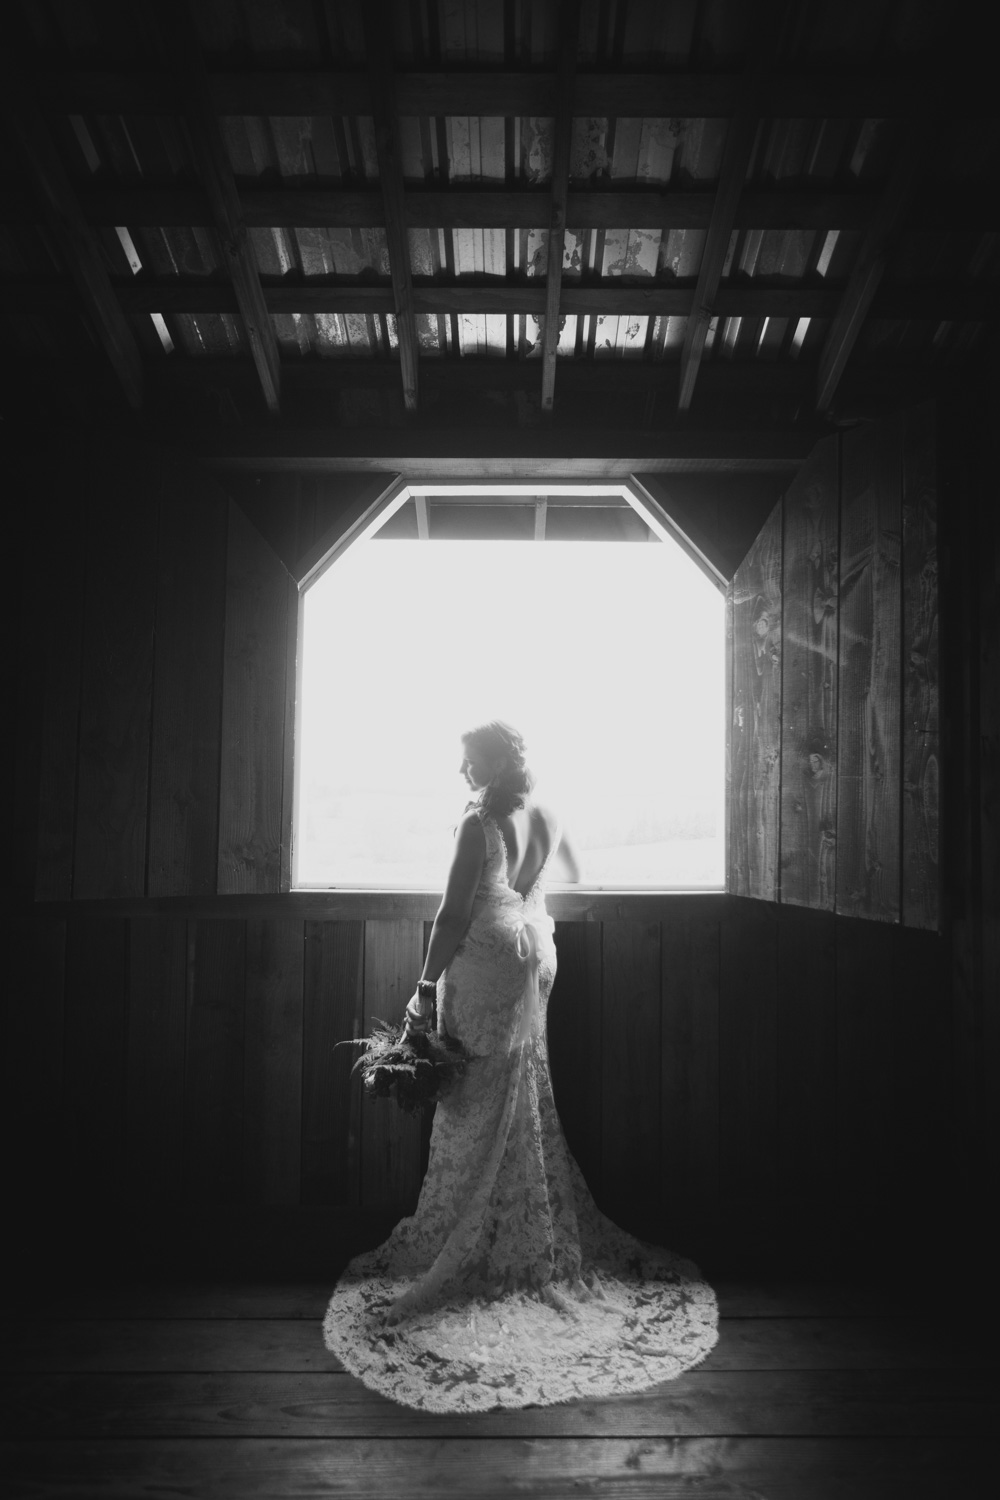 Dallas Oregon Wedding Photography Focal Point Studios-127.jpg